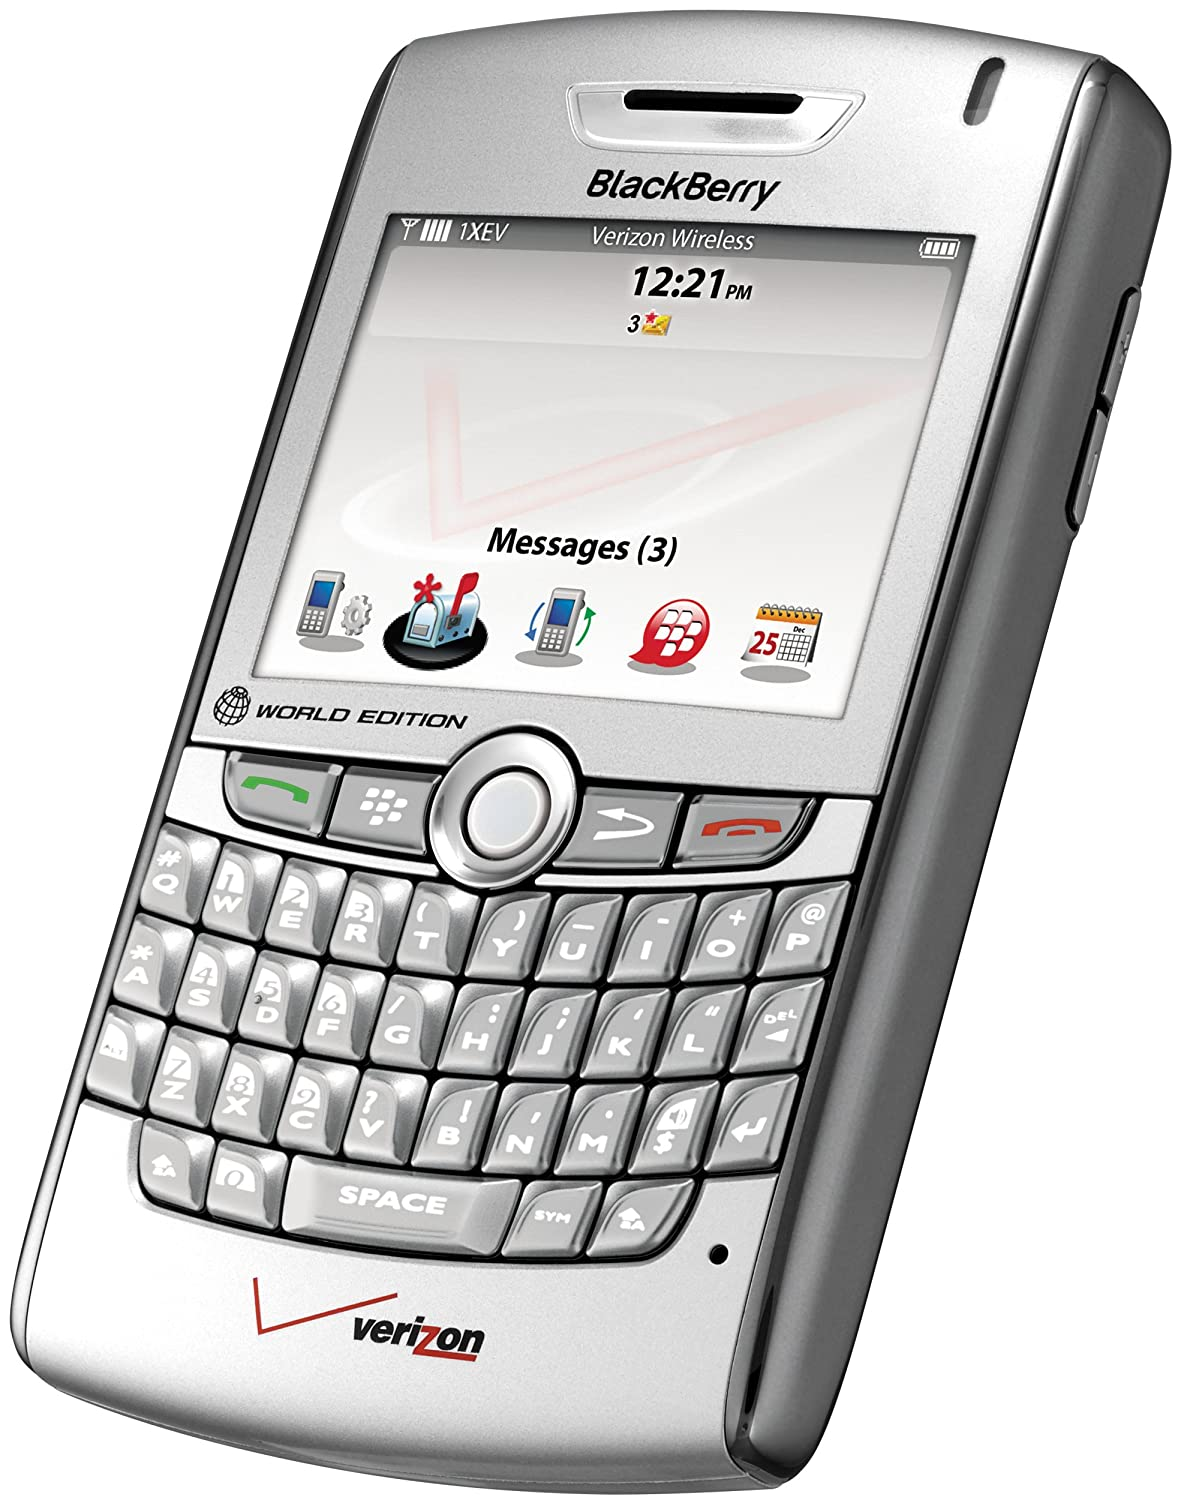 blackberry 8830 user guide verizon product user guide instruction BlackBerry 8810 BlackBerry 8810